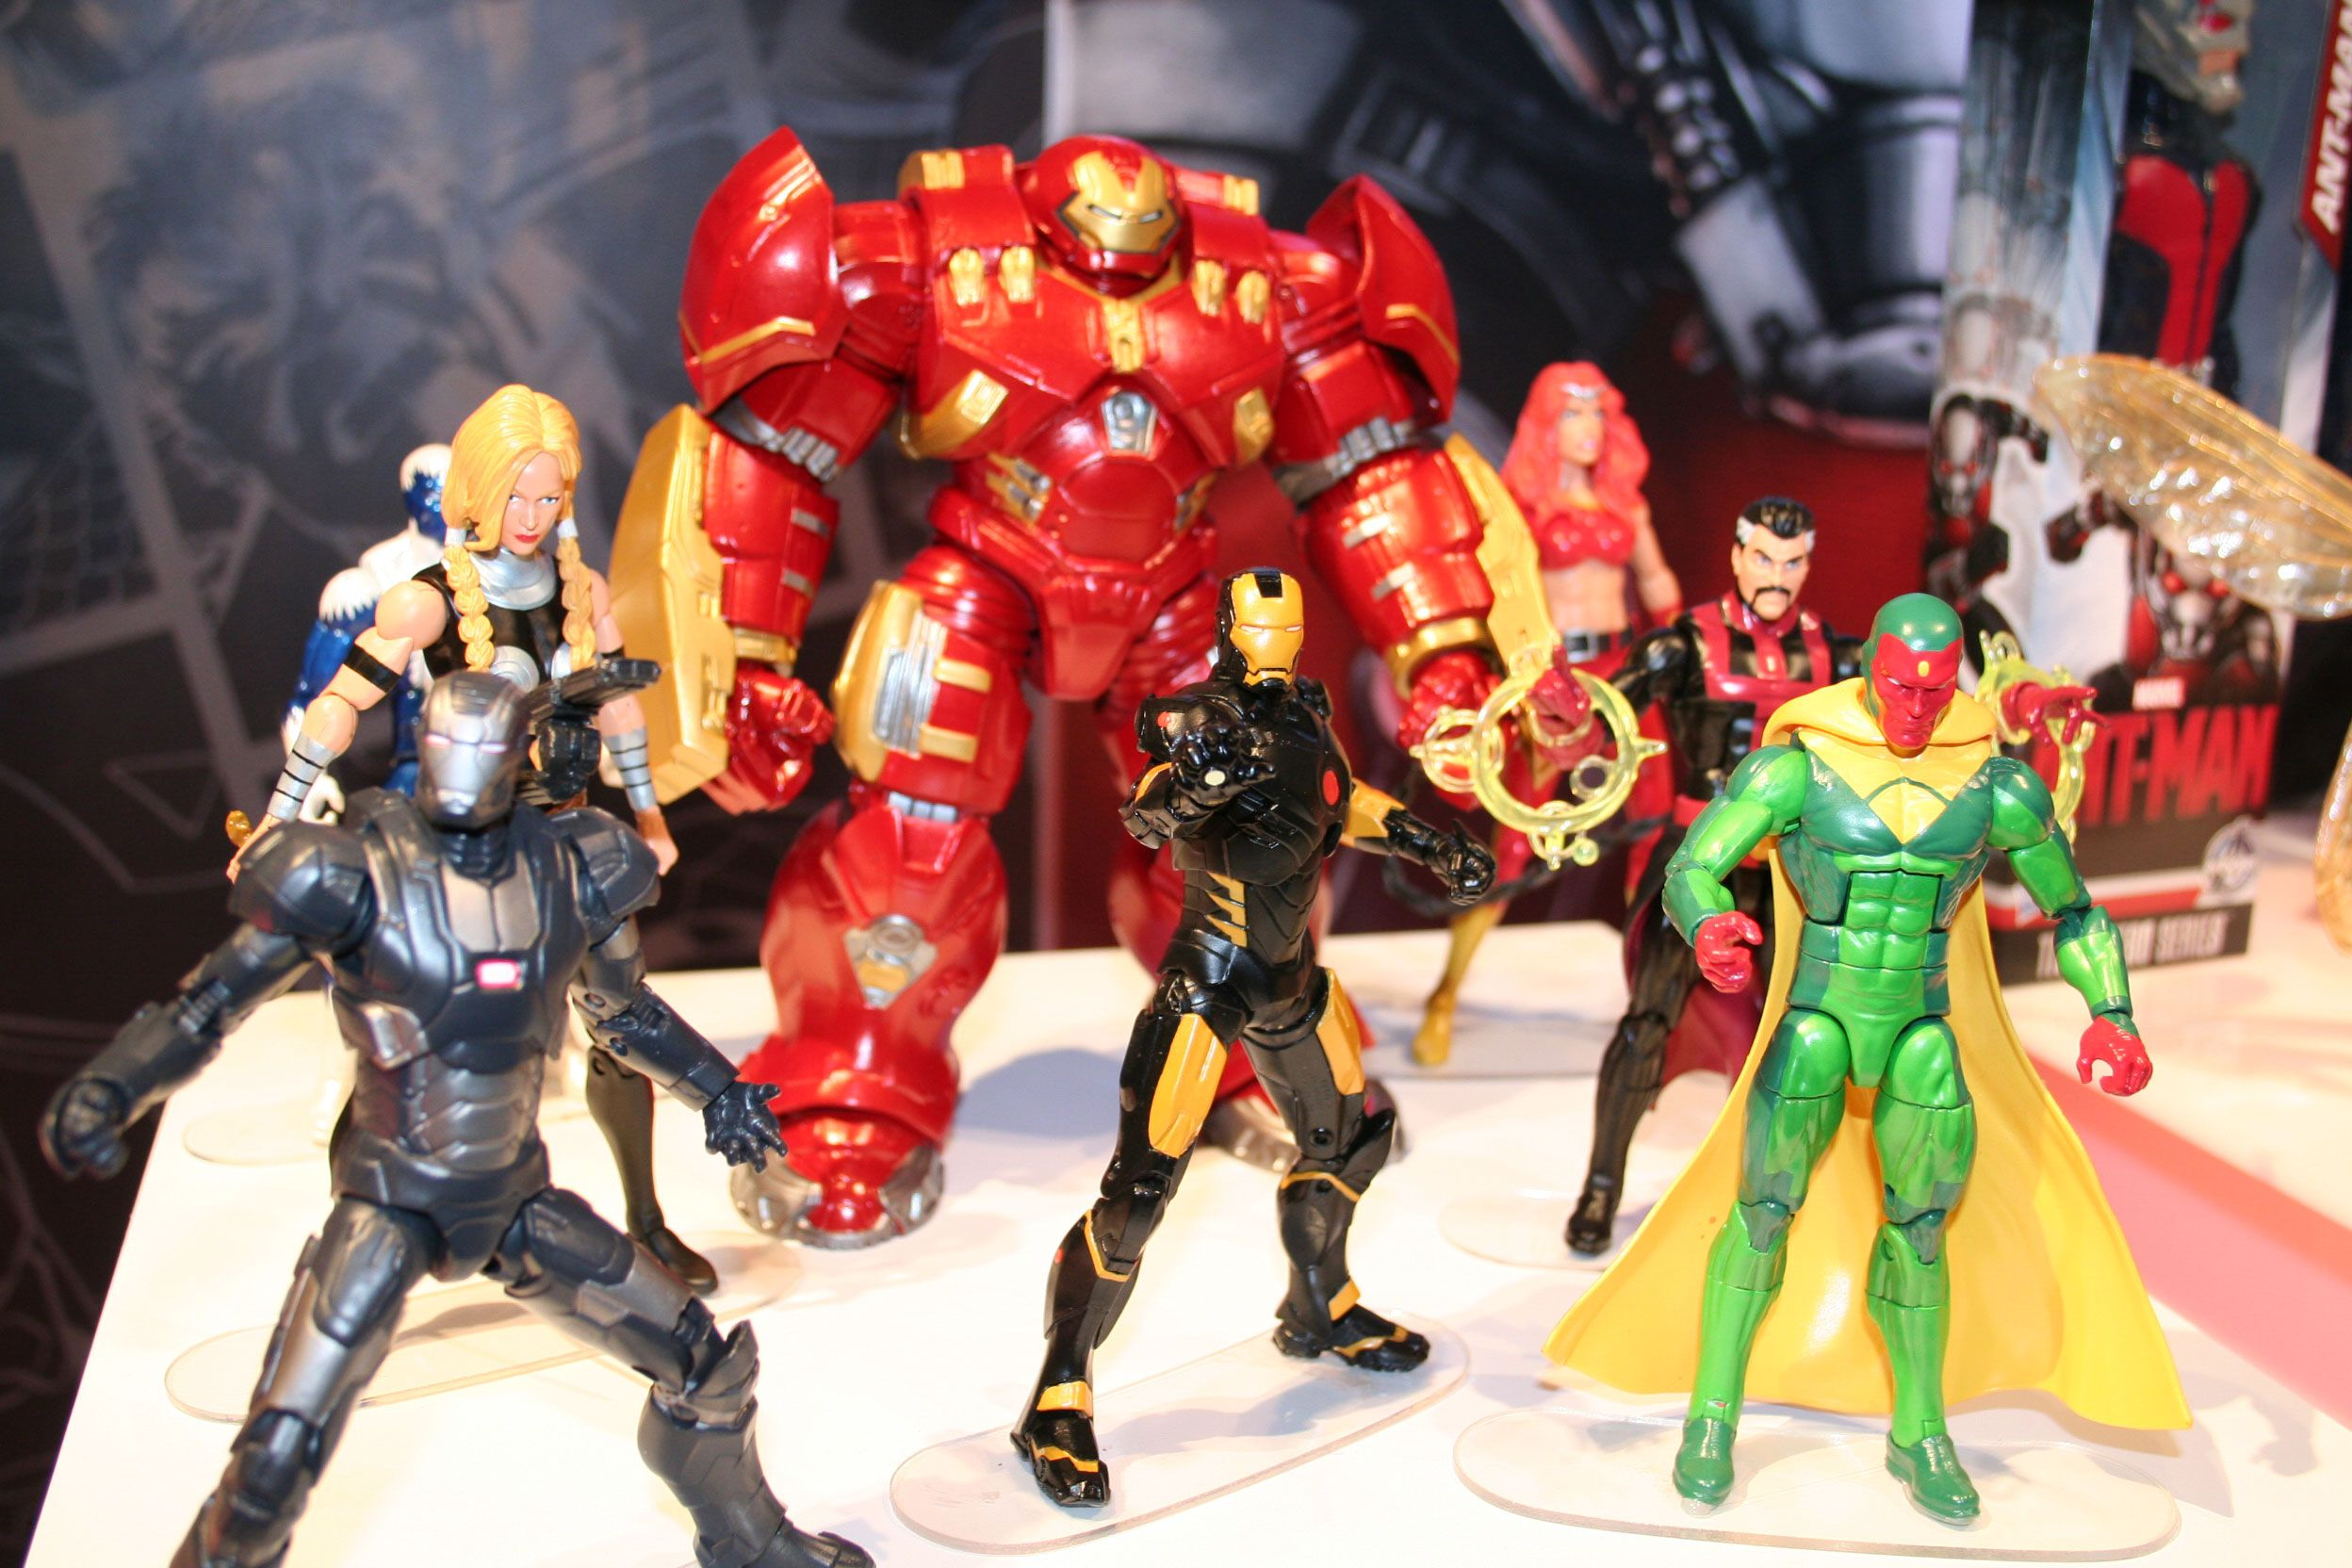 Toys From Hasbro : Avengers age of ultron and ant man toys revealed hasbro